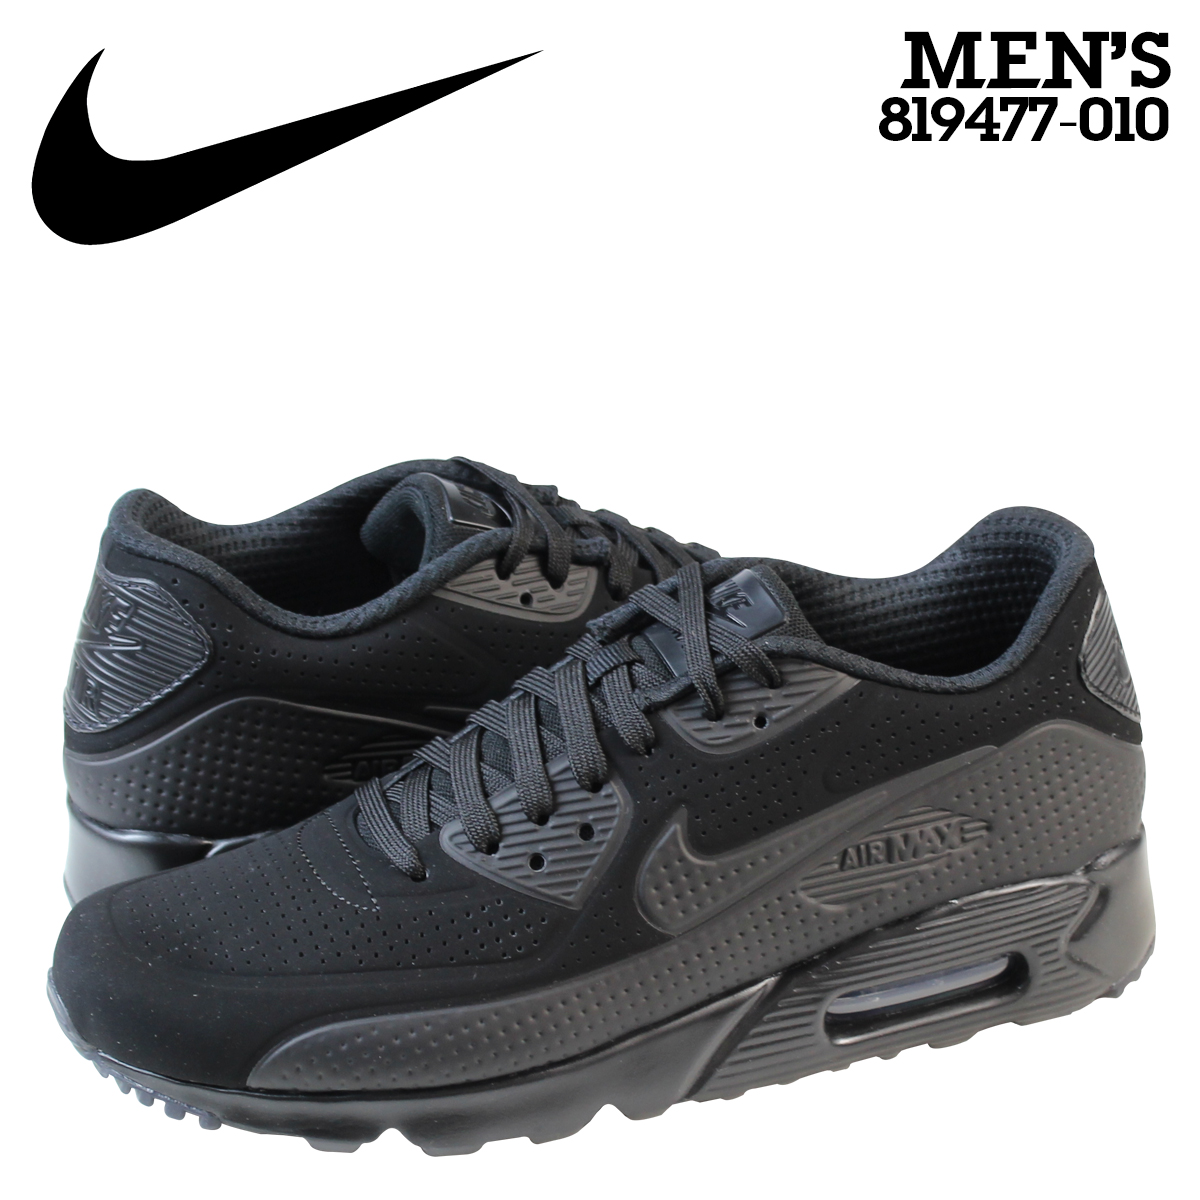 plus récent a27cd 6f187 NIKE Kie Ney AMAX sneakers AIR MAX 90 ULTRA MOIRE Air Max 90 ultra moire  819,477-010 men's shoes black black